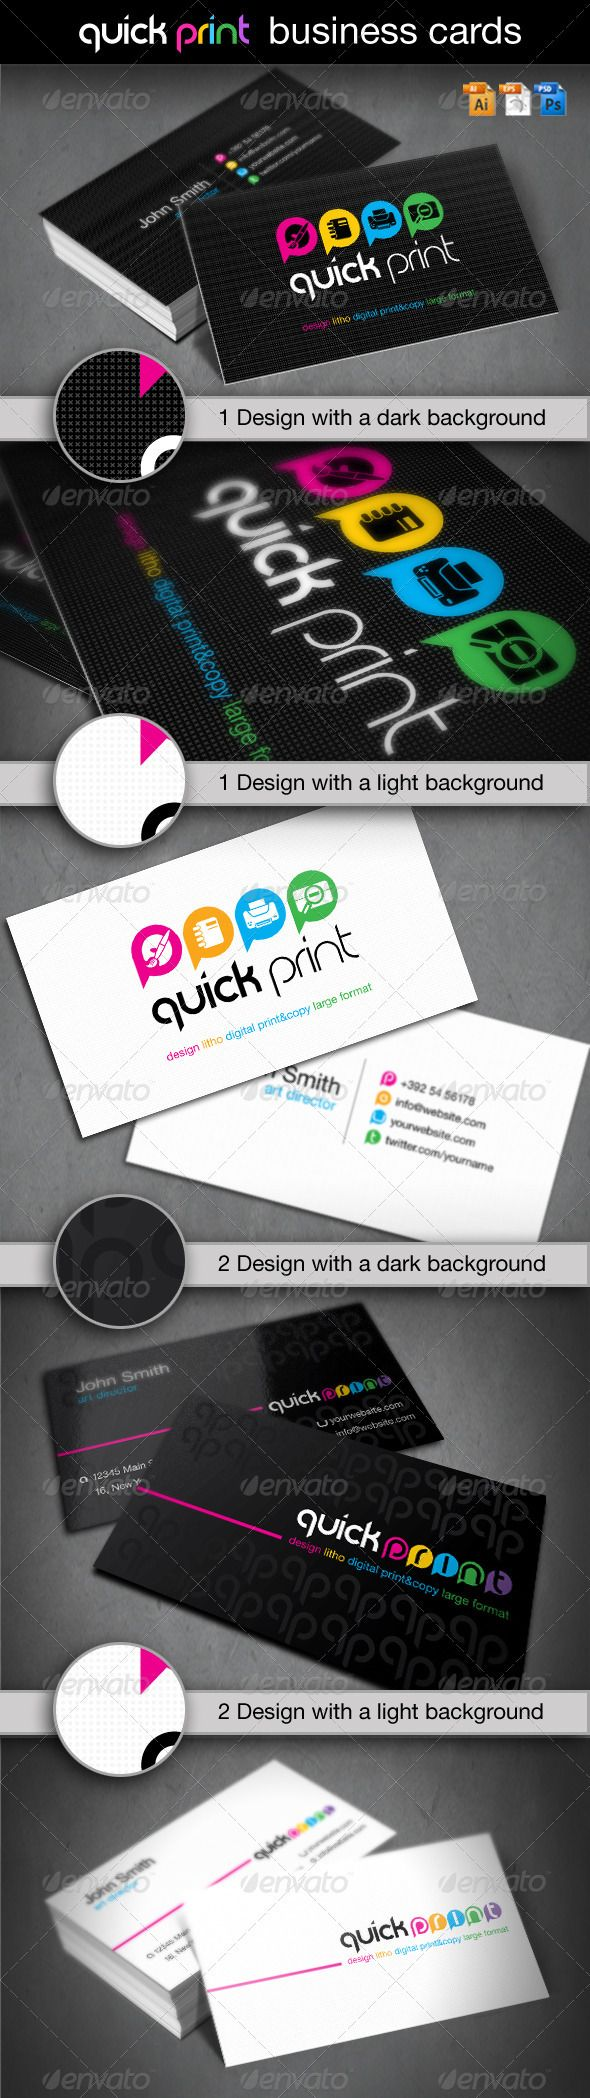 quick print business card template psd vector eps vector ai download here - Quick Print Business Cards